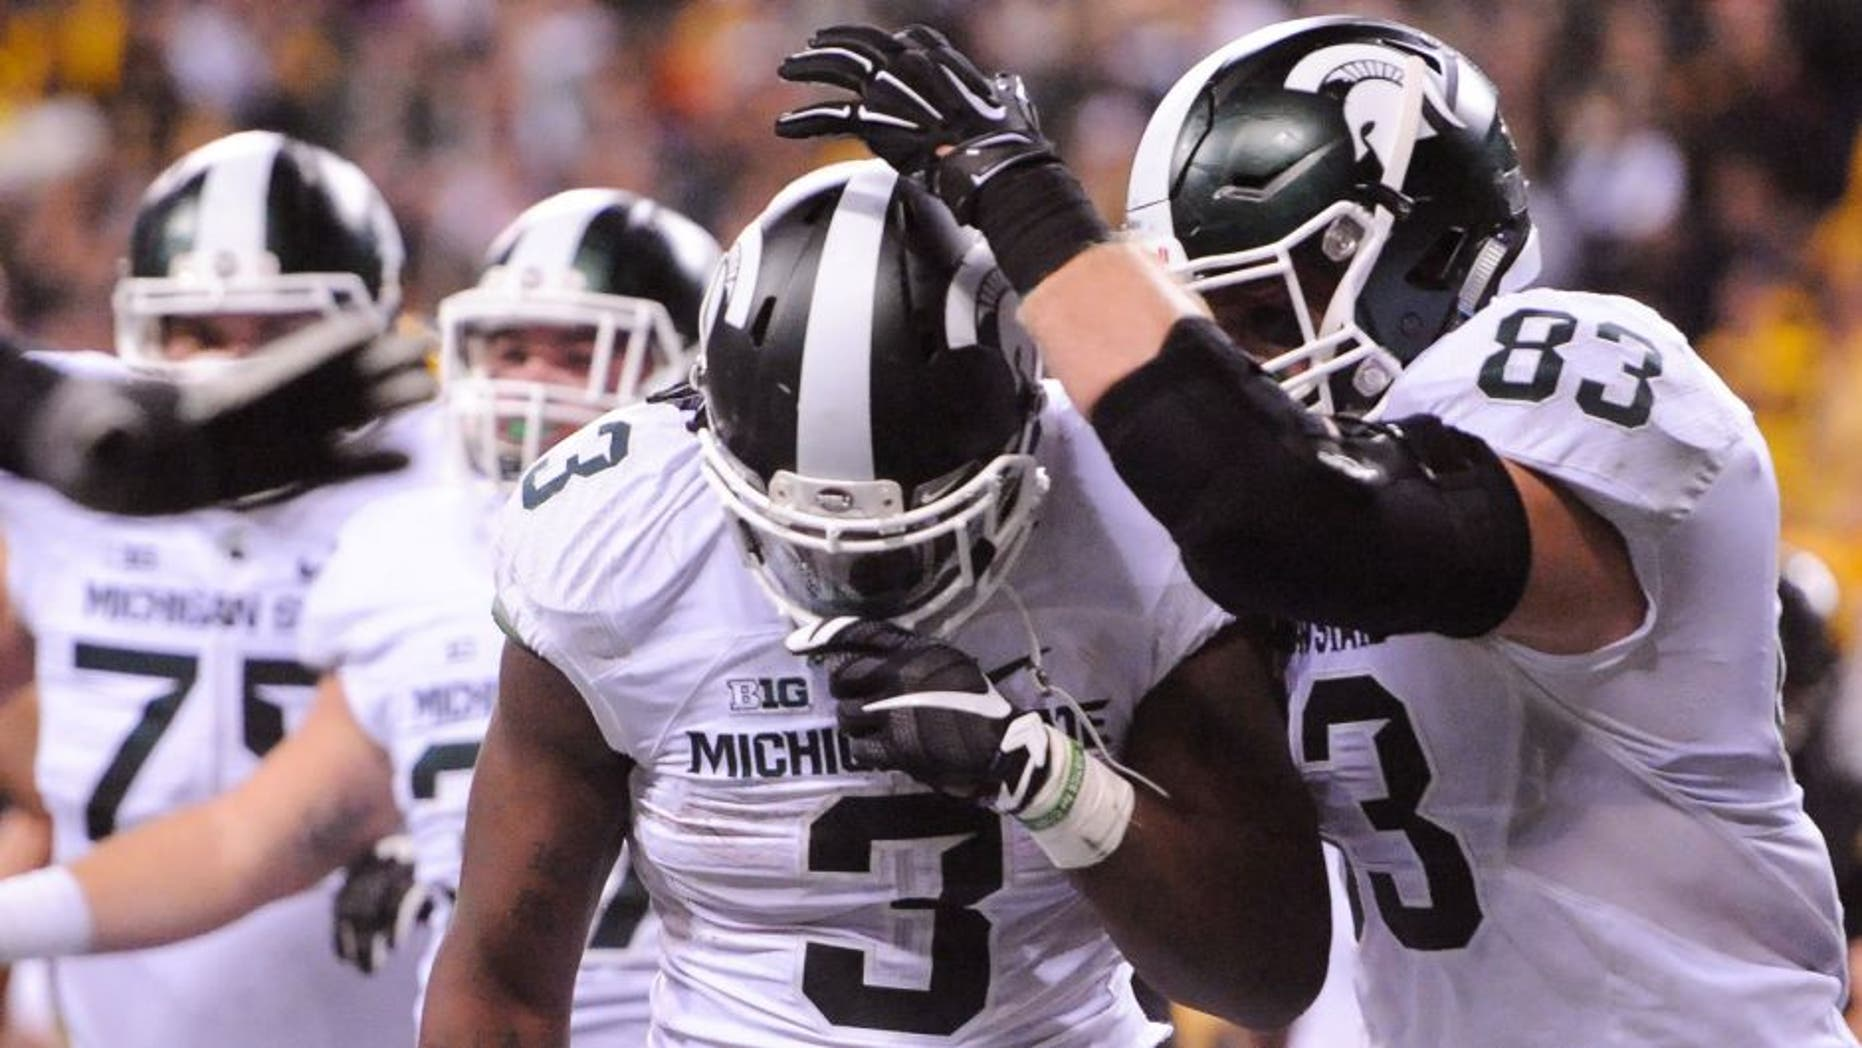 Dec 5, 2015; Indianapolis, IN, USA; Michigan State Spartans running back LJ Scott (3) celebrates the game-winning touchdown with tight end Paul Lang (83) over the Iowa Hawkeyes during the fourth quarter in the Big Ten Conference football championship game at Lucas Oil Stadium. Michigan State won 16-13. Mandatory Credit: Thomas J. Russo-USA TODAY Sports